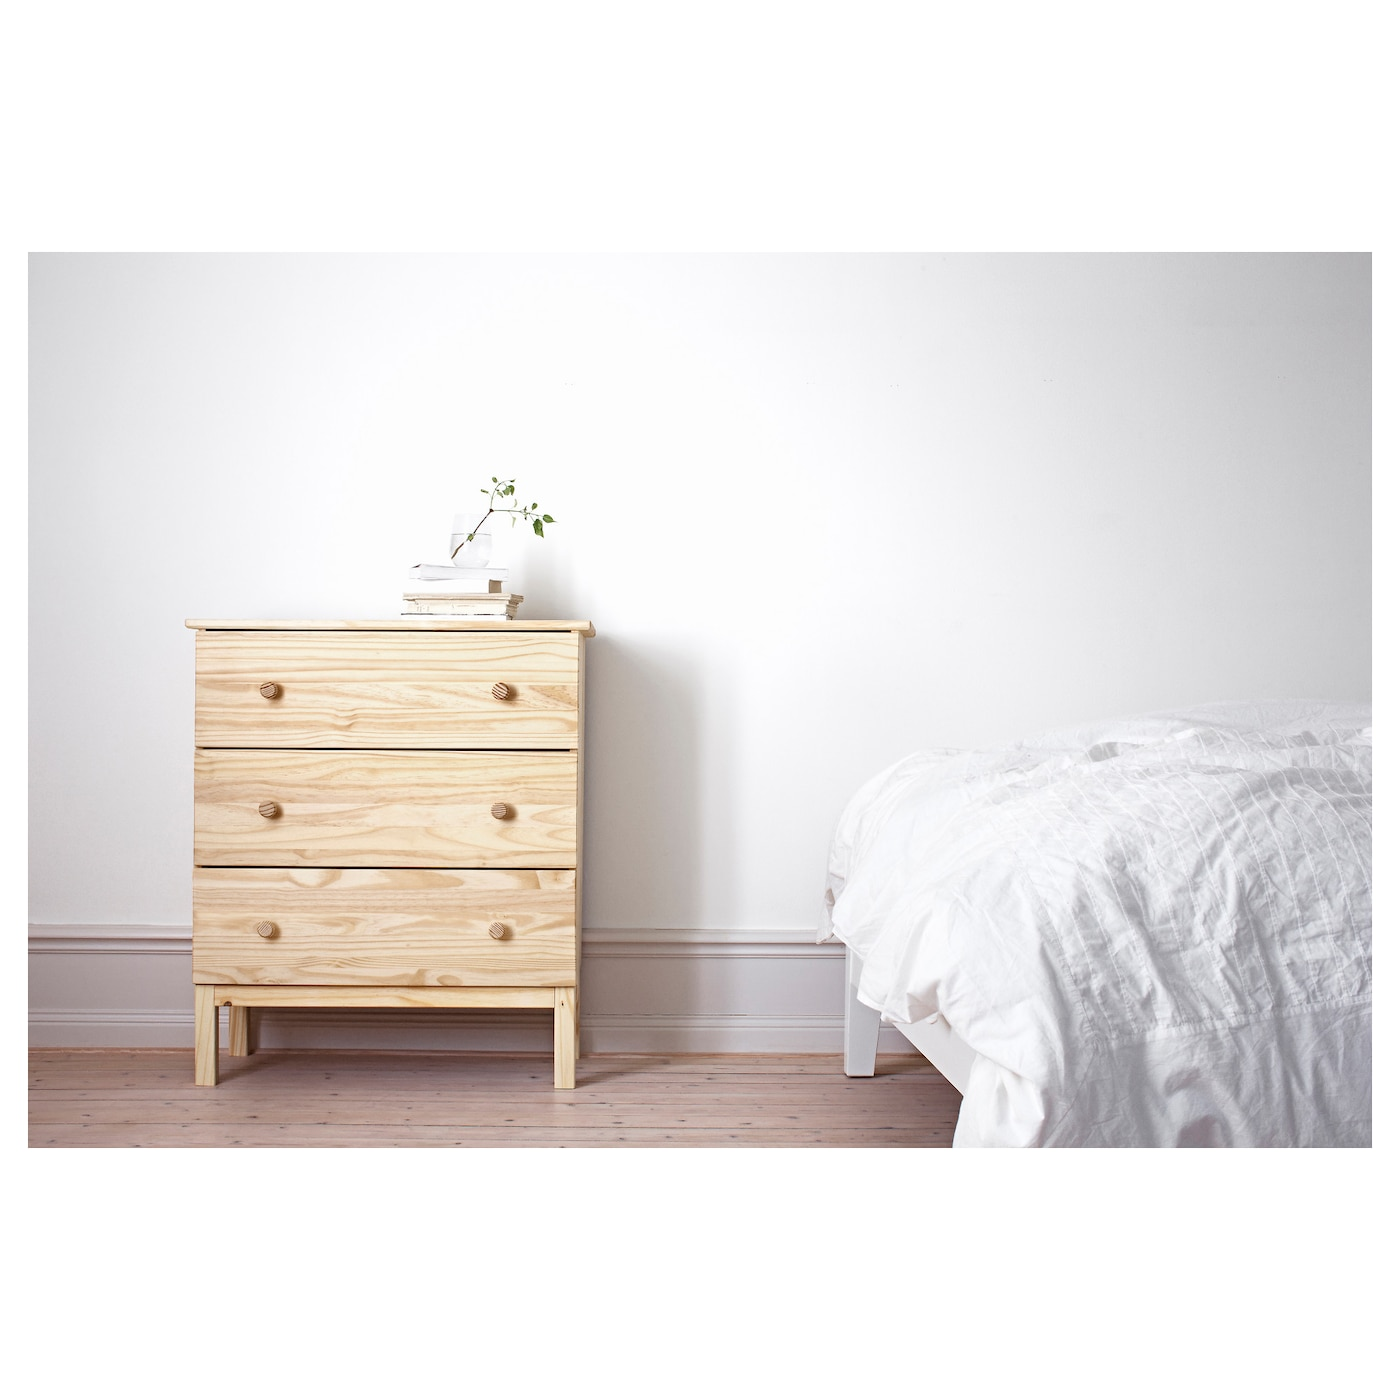 Ikea Tarva Chest Of 3 Drawers Made Solid Wood Which Is A Hardwearing And